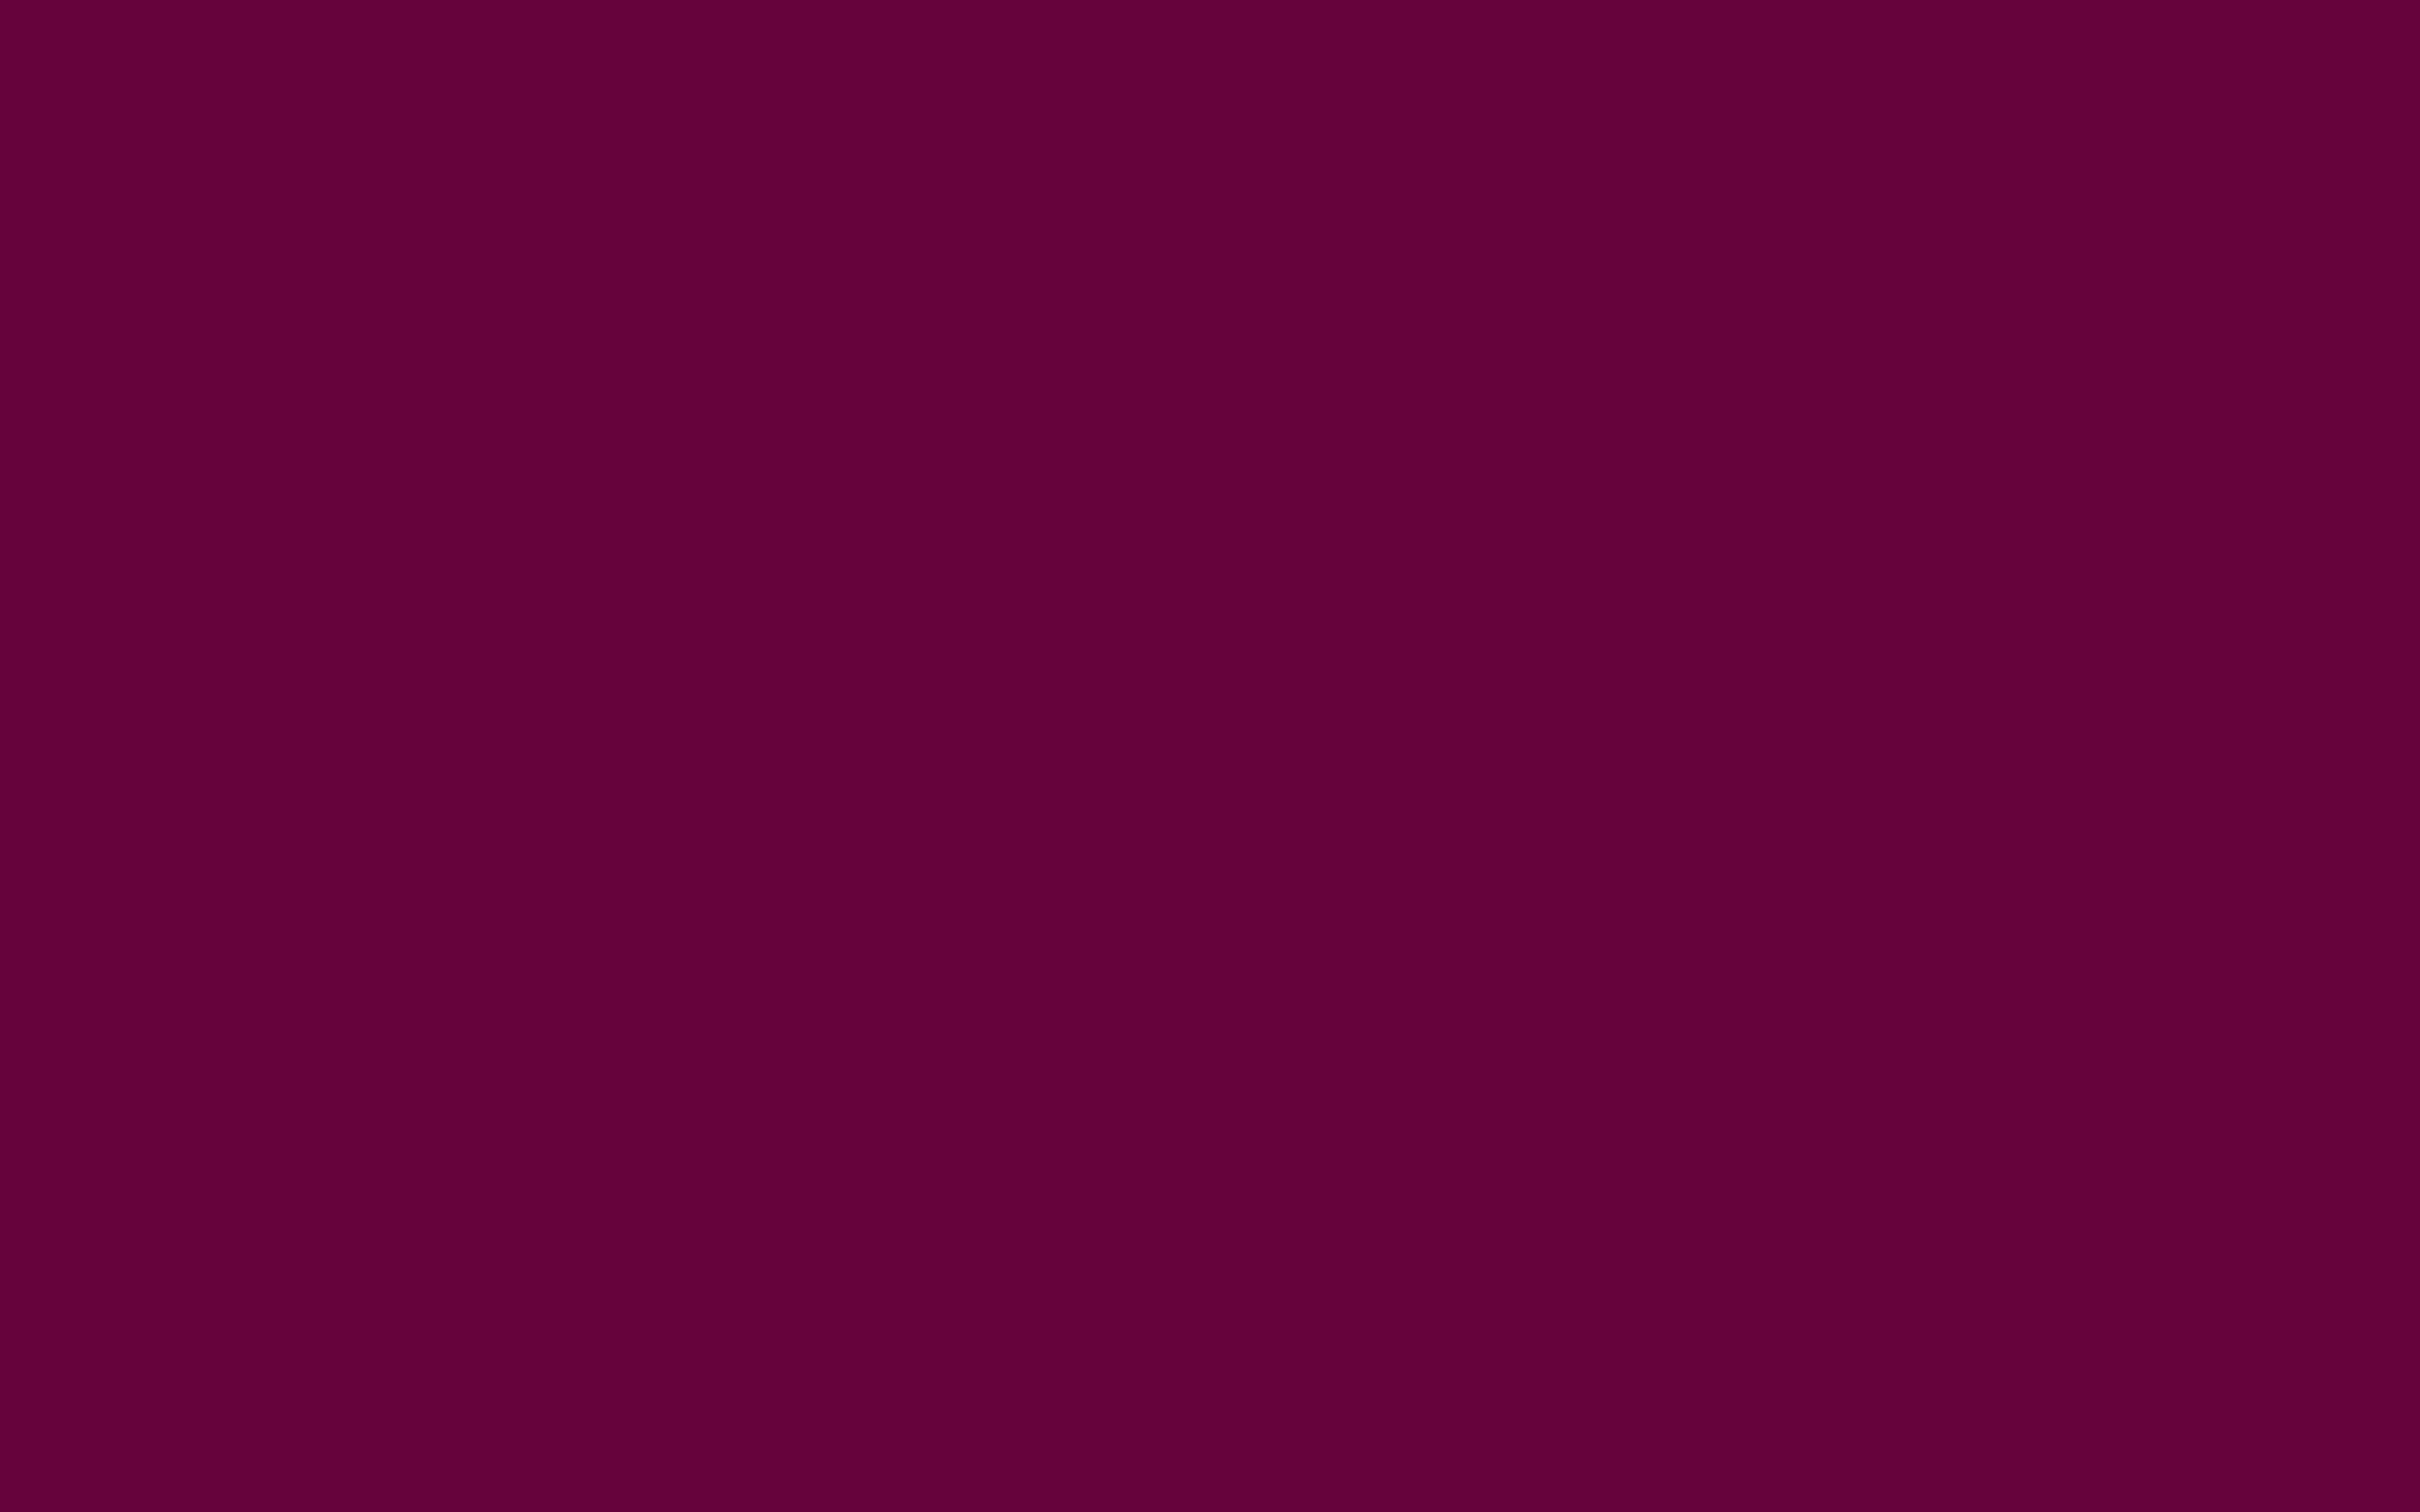 2880x1800 Imperial Purple Solid Color Background